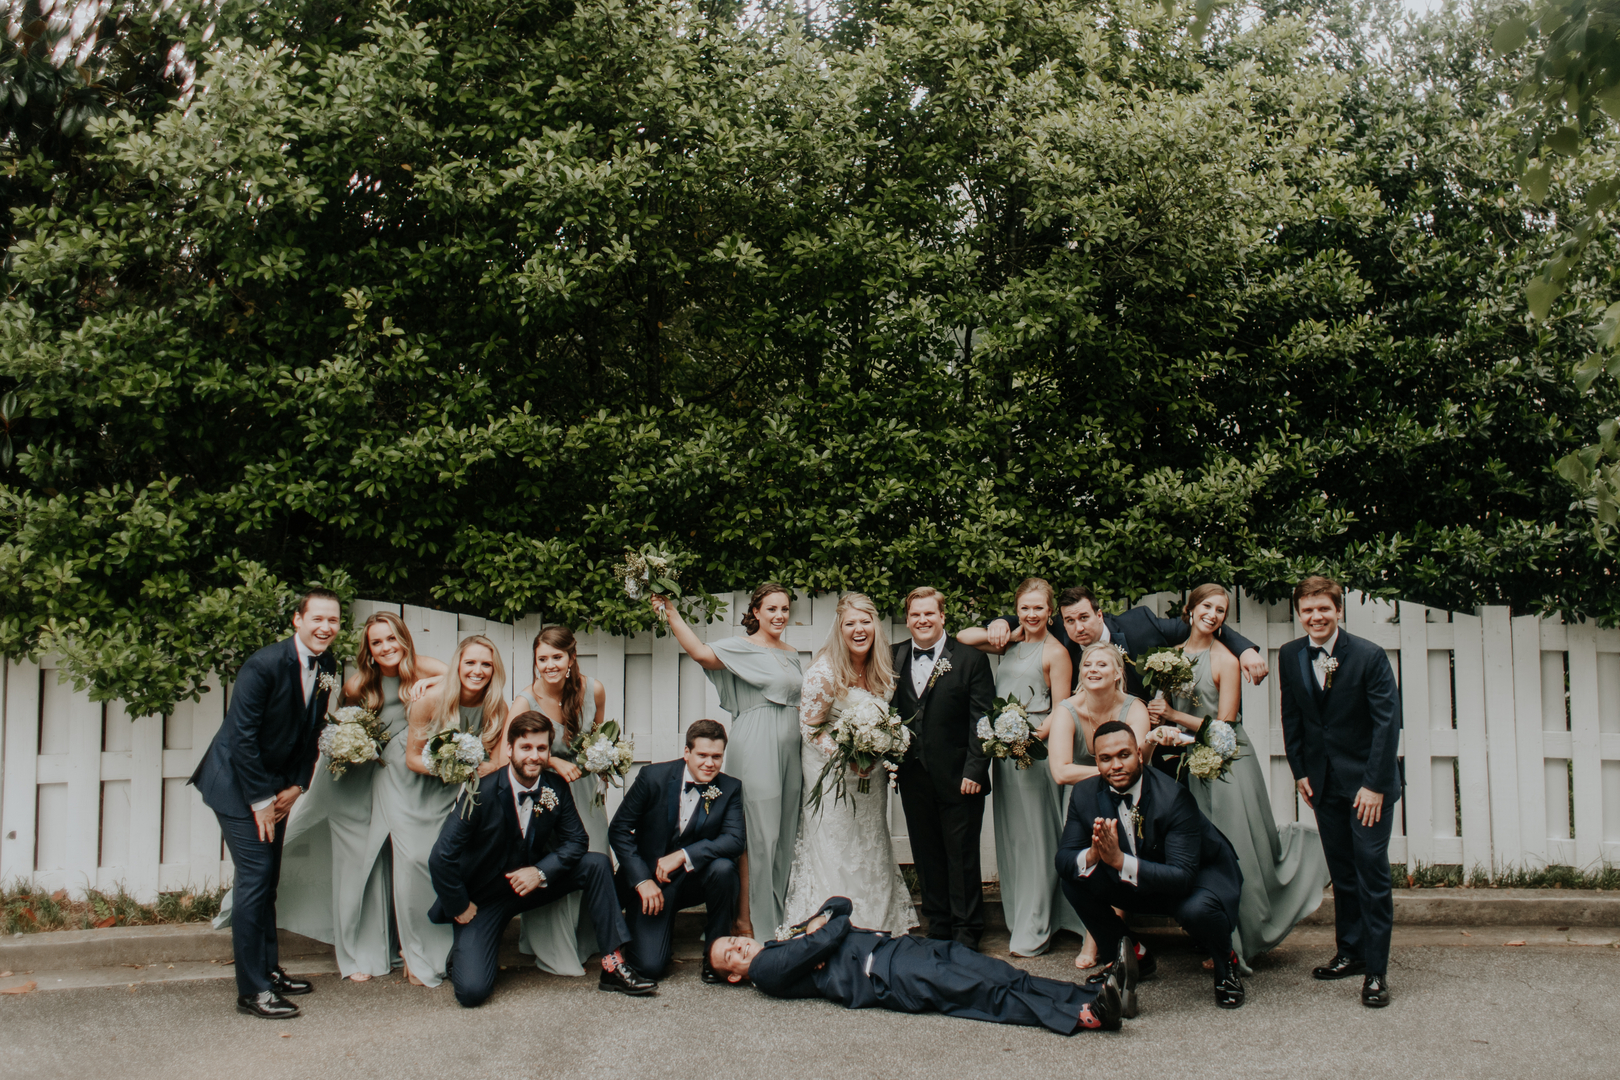 A Romantic Rustic Wedding – Mimi and Neil